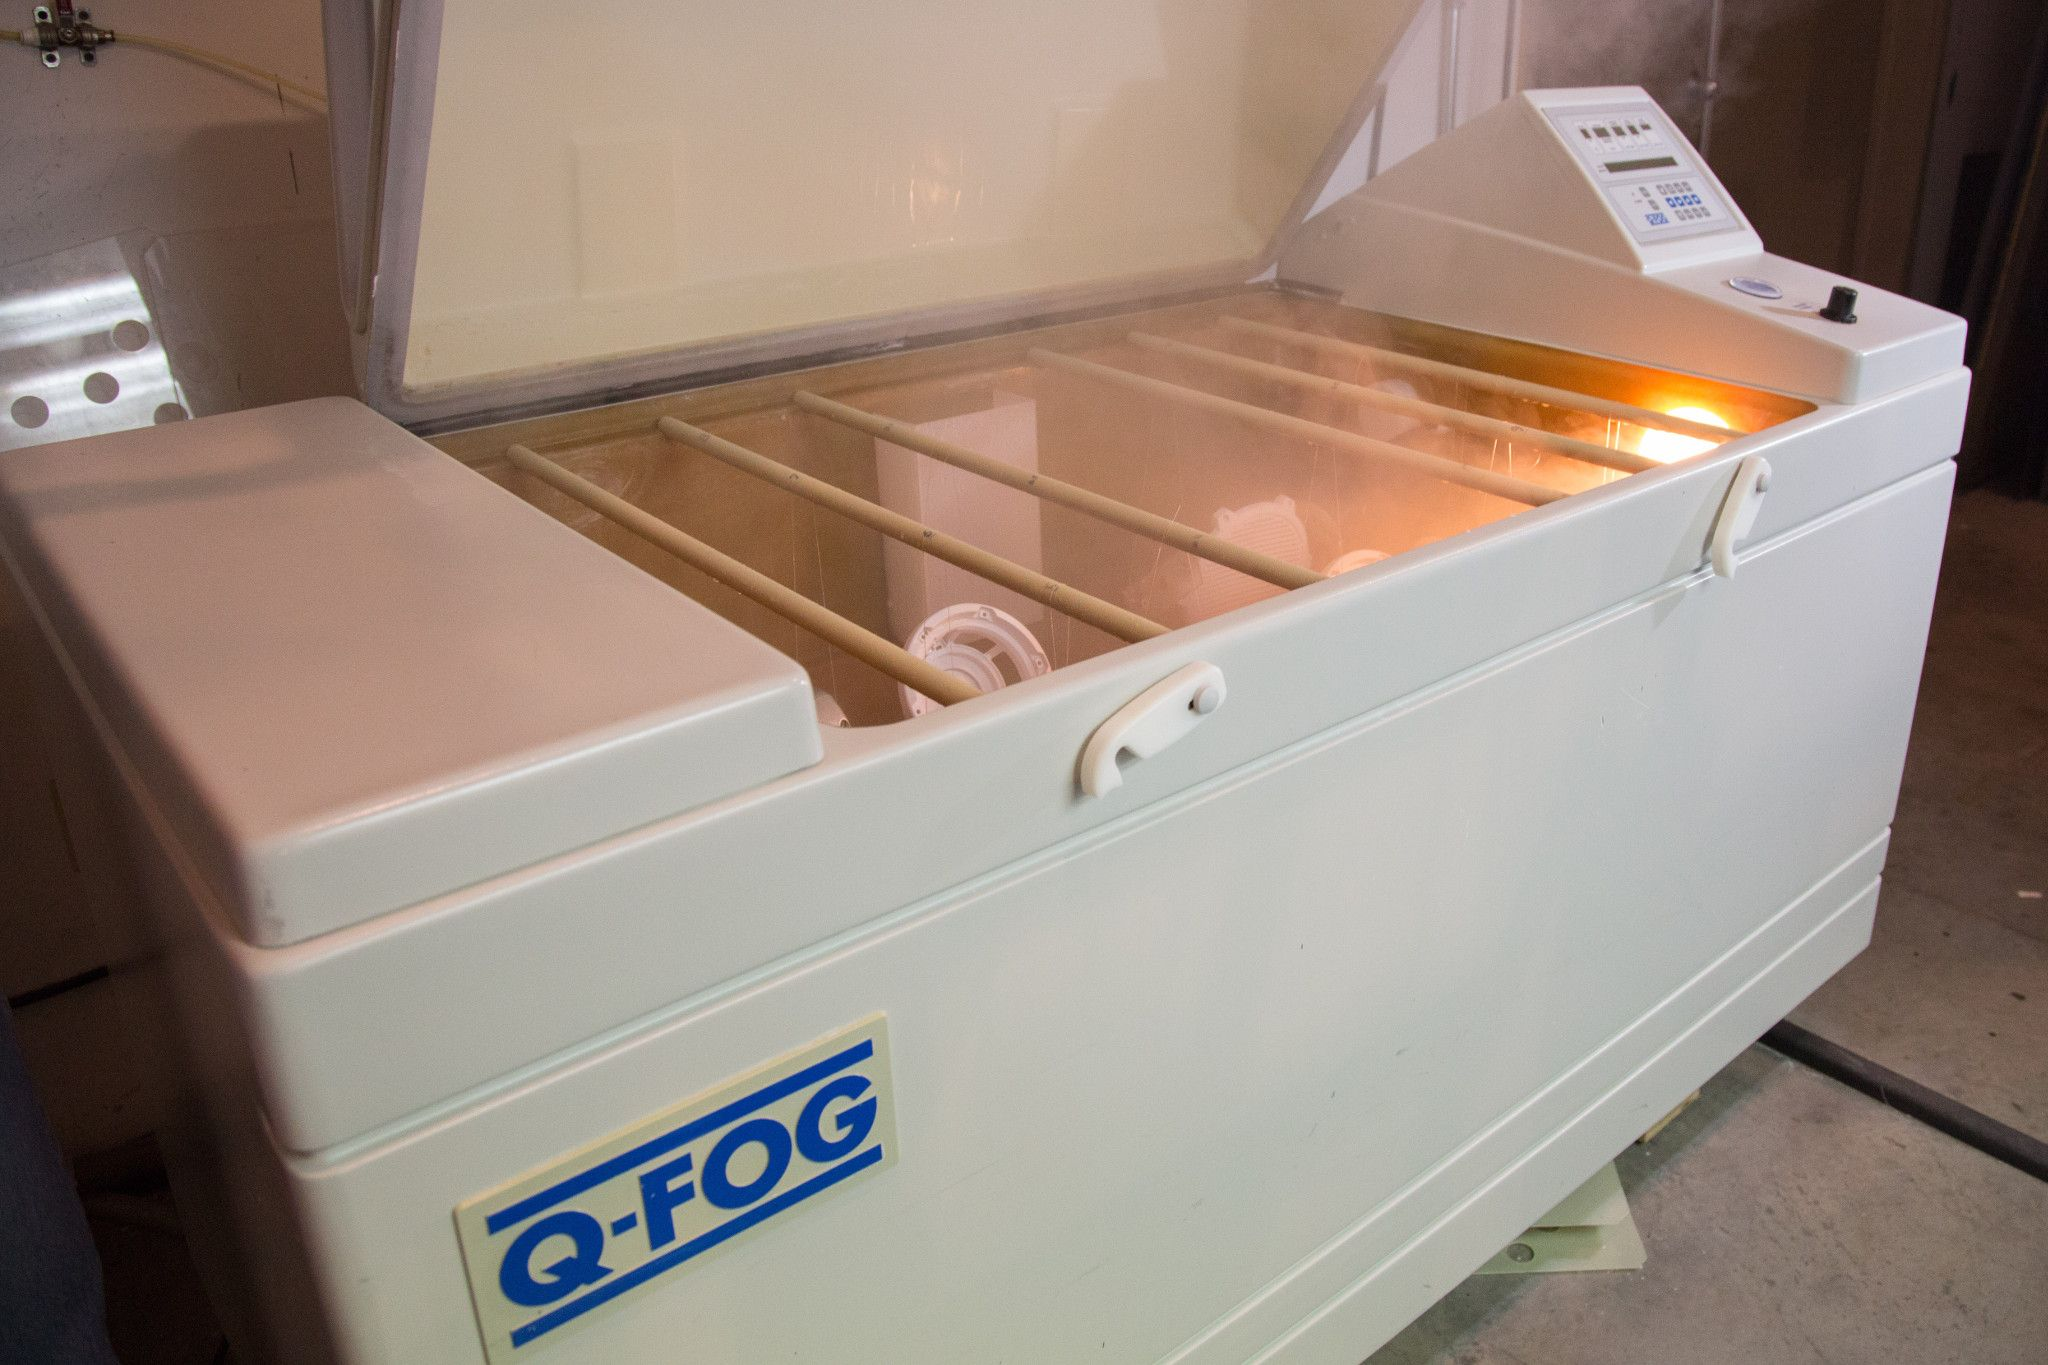 Q-Fog Environmental Test Chamber